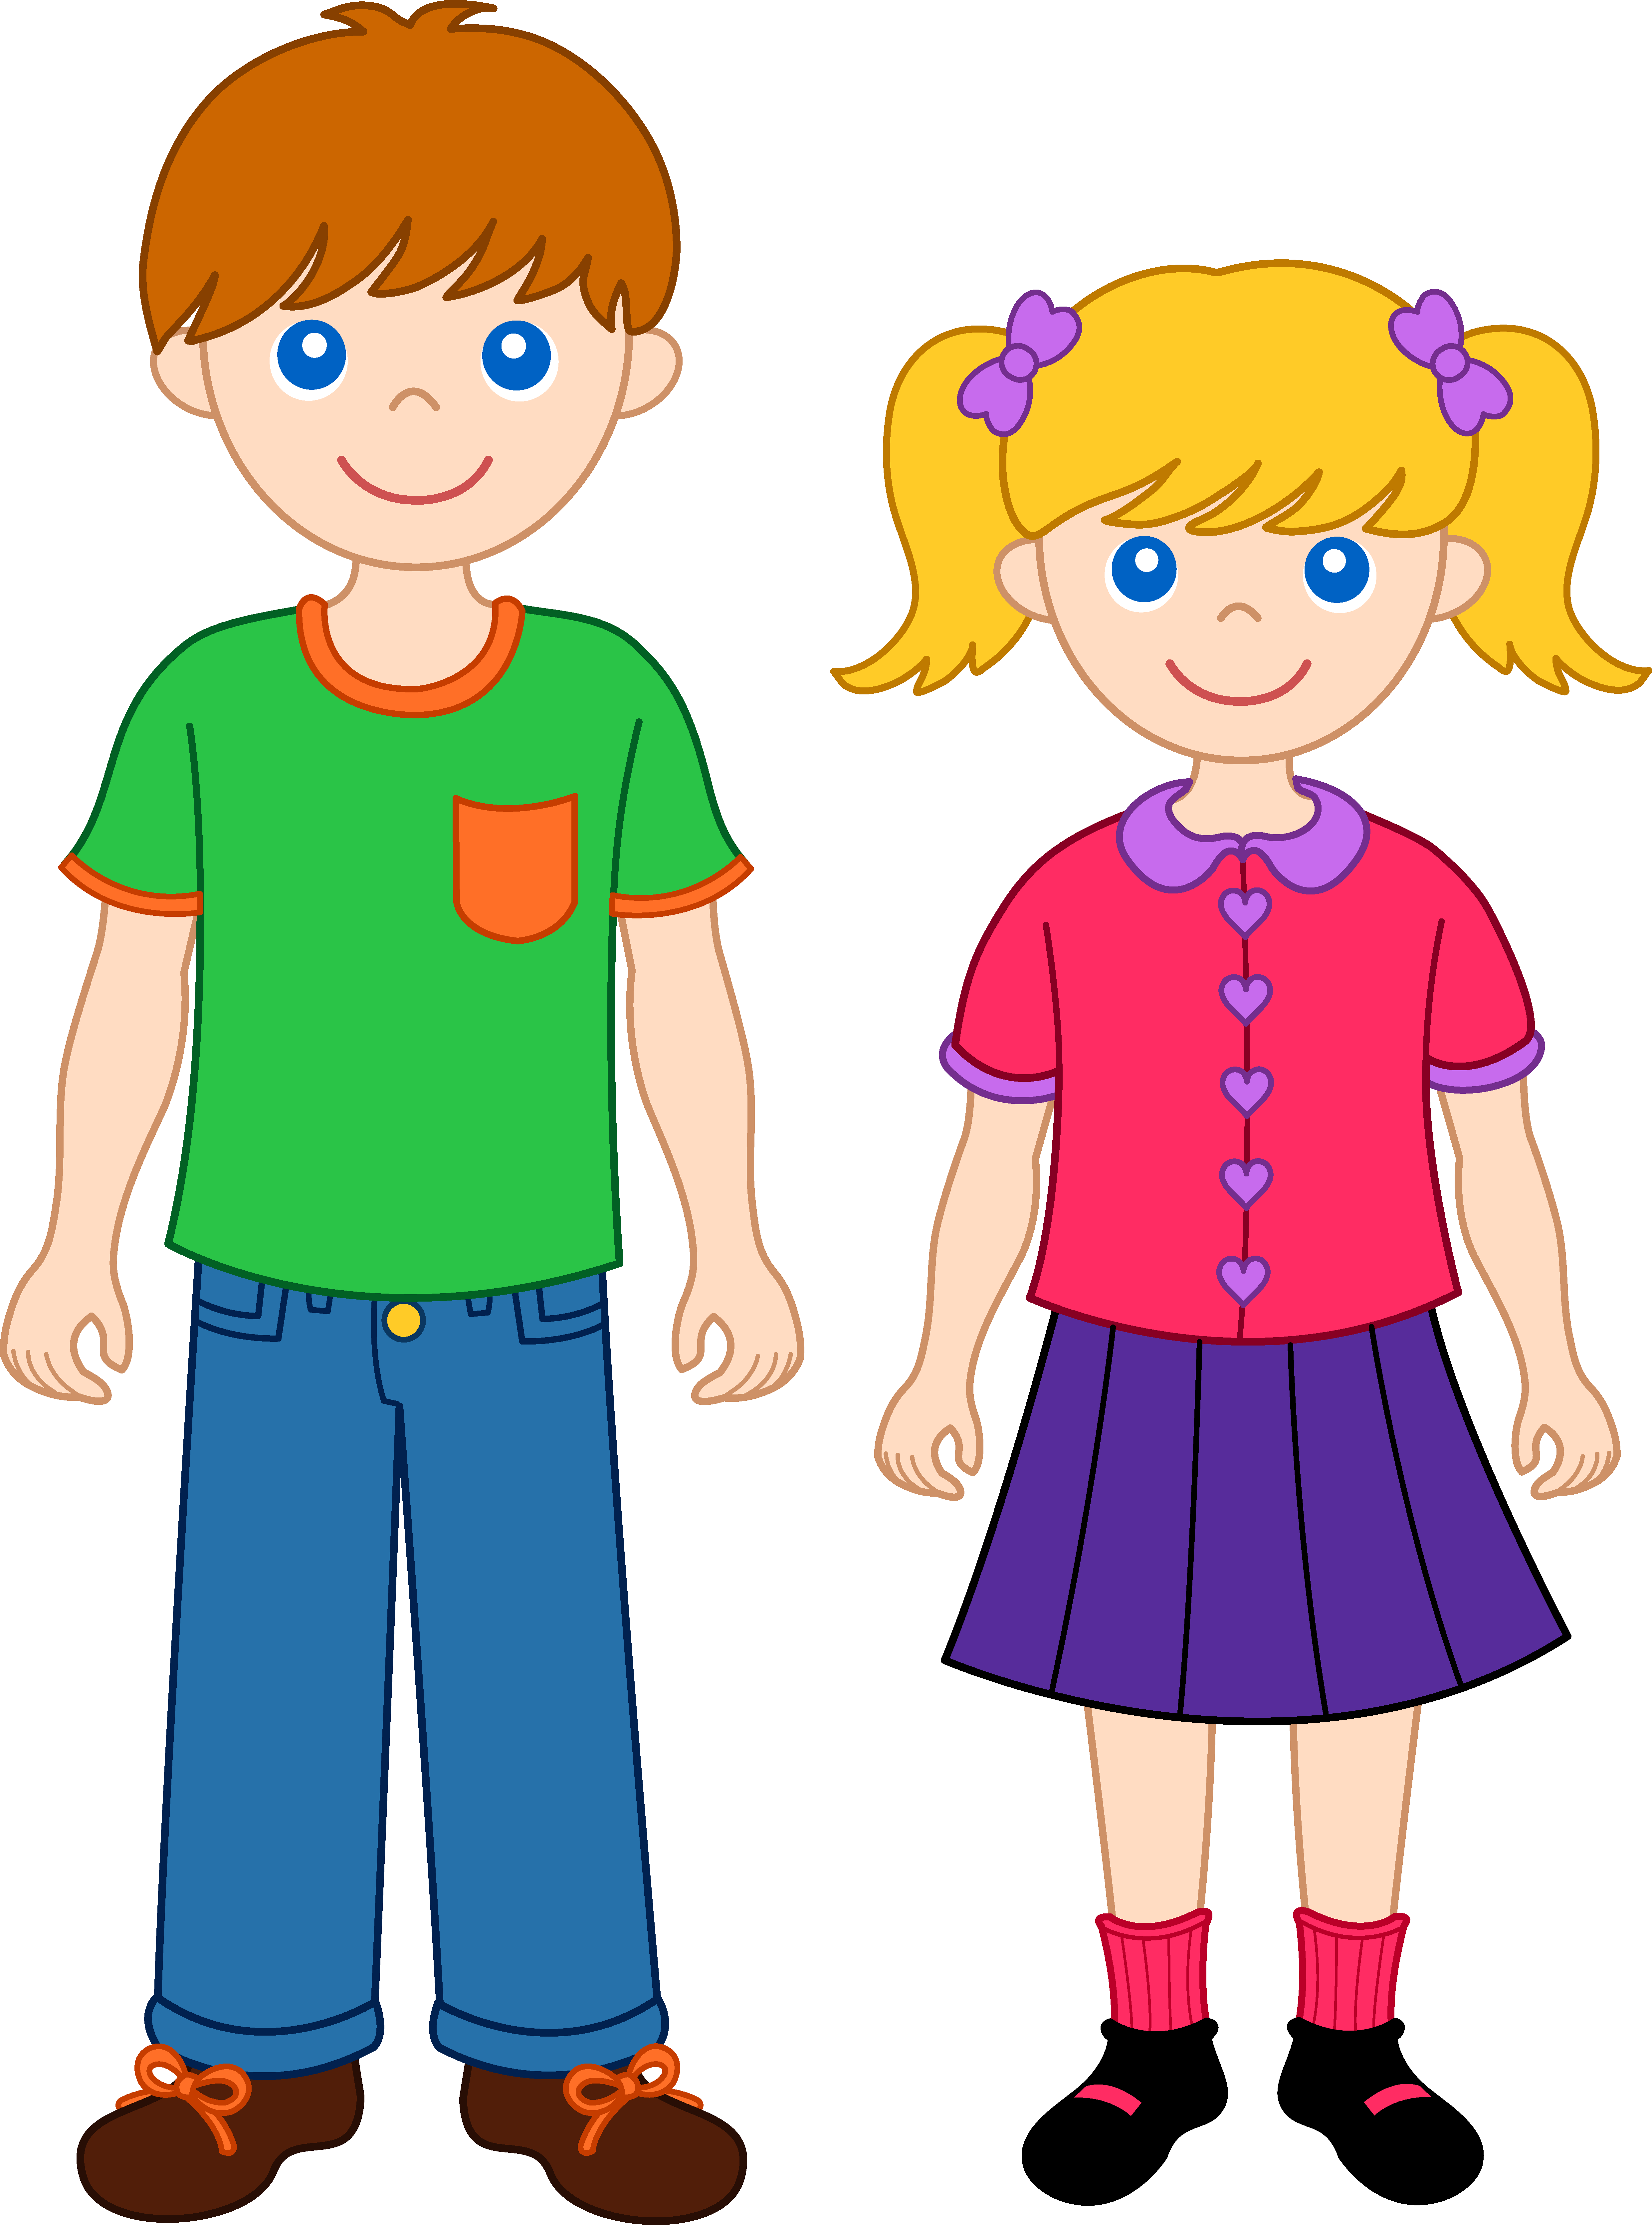 sister clipart. Girlfriends cliparts. Girlfriends cliparts. Brother cliparts